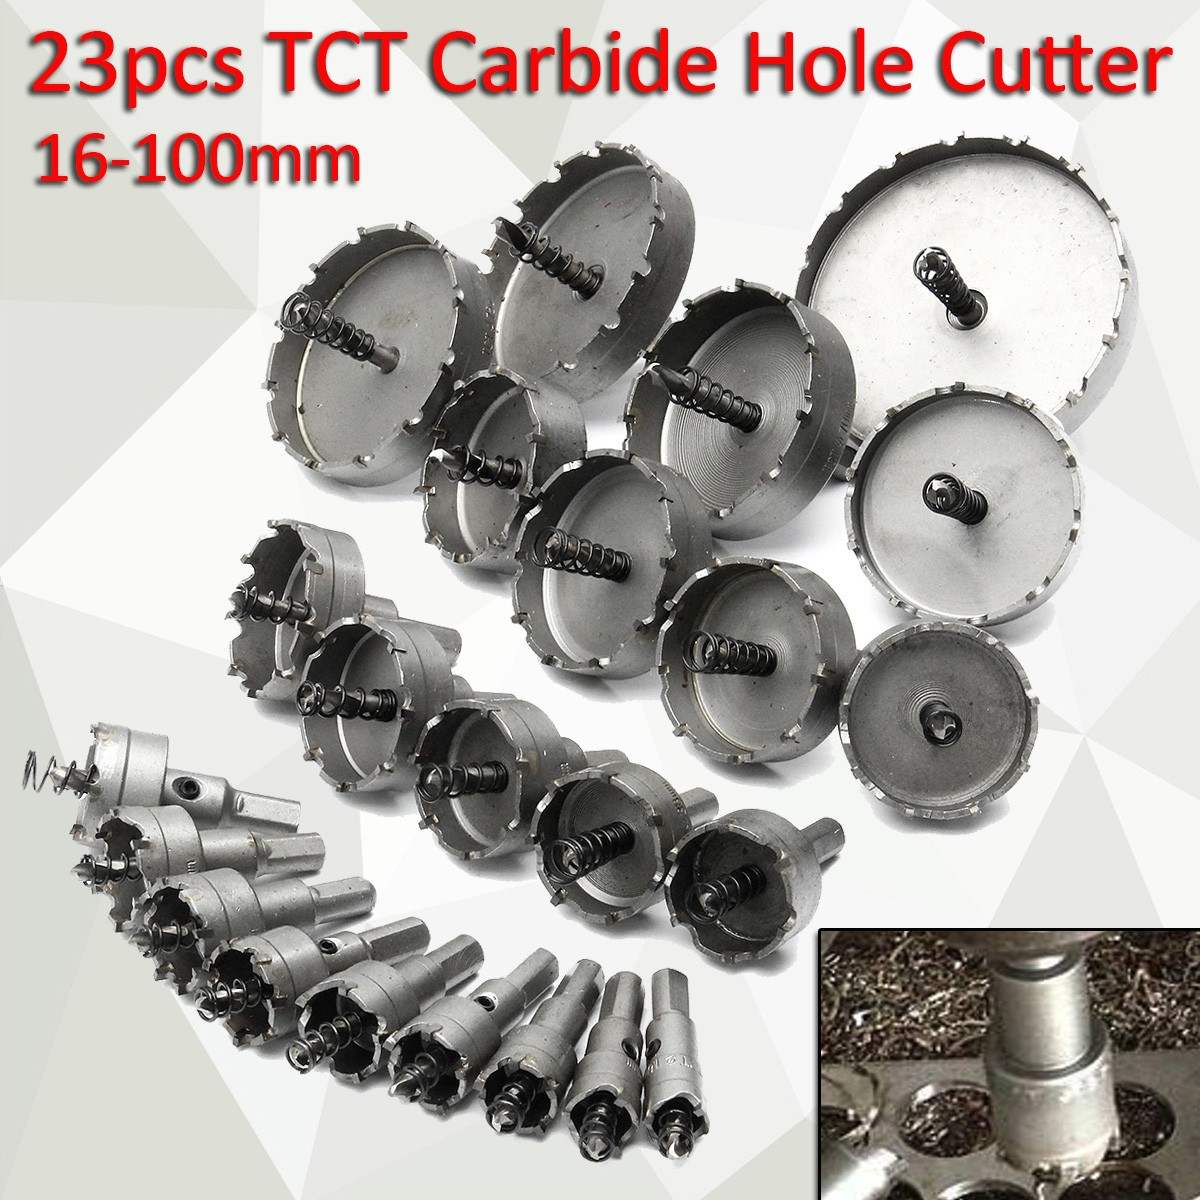 New 23pc/Set Alloy Silver 16-100mm Hole Saw Set Steel Carbide Tip Drill Bit Metal Wood Cutter Drill Electric Drill Chuck 6pcs lot stainless steel tct drill bit set carbide tip drill bit hole saw cutter for metal alloy drilling tool